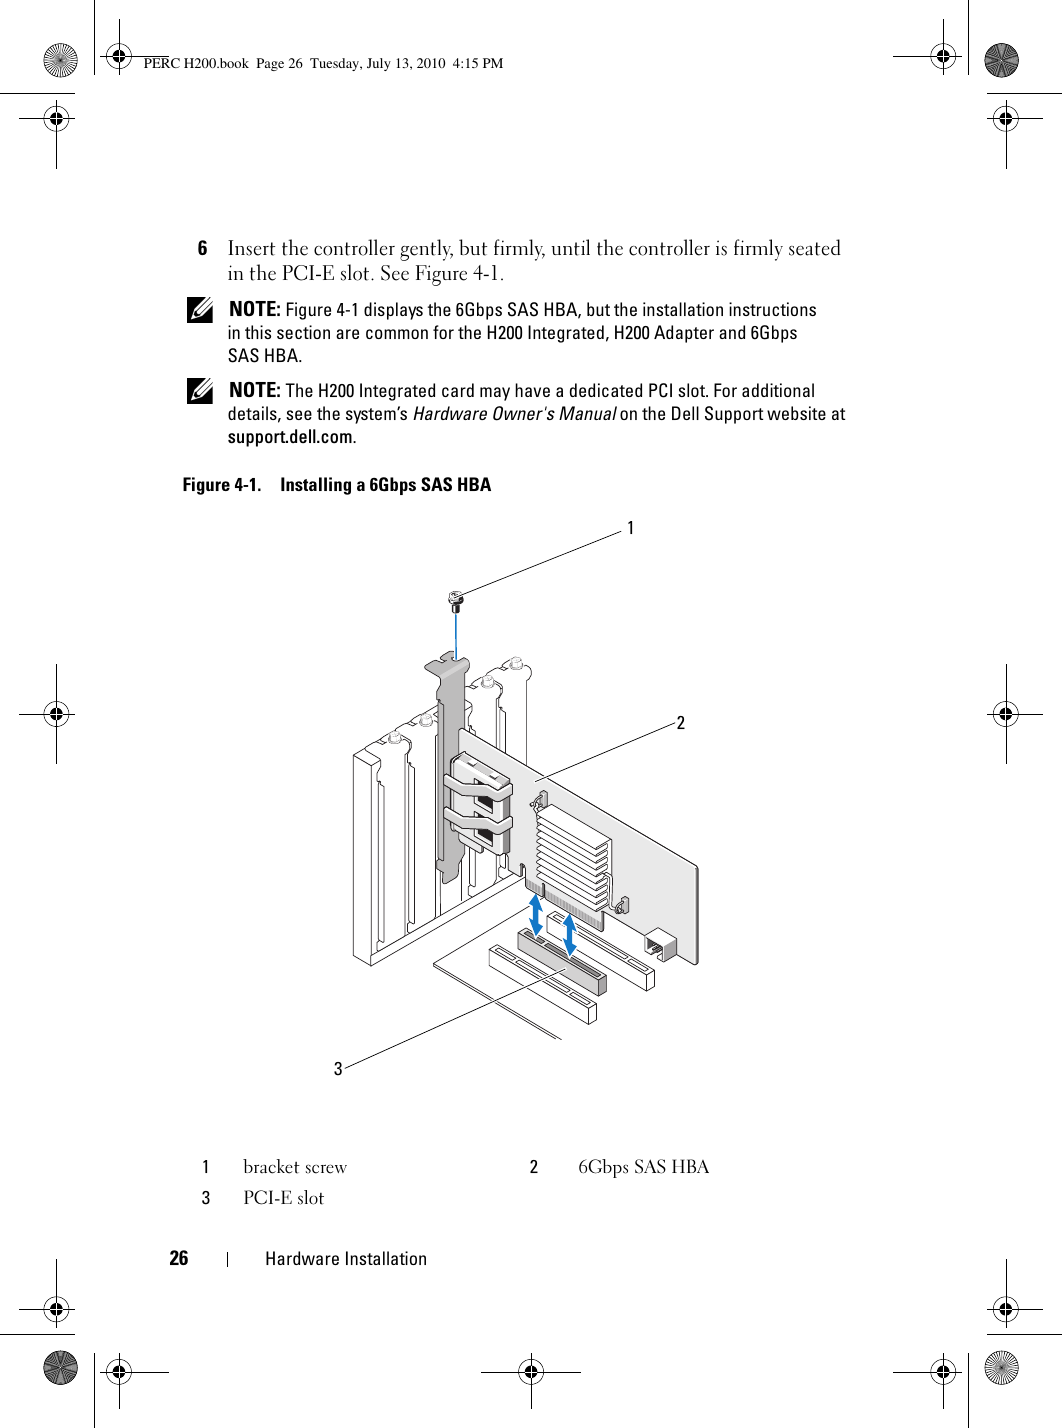 Dell Poweredge Raid Controller H200 Owners Manual User's Guide